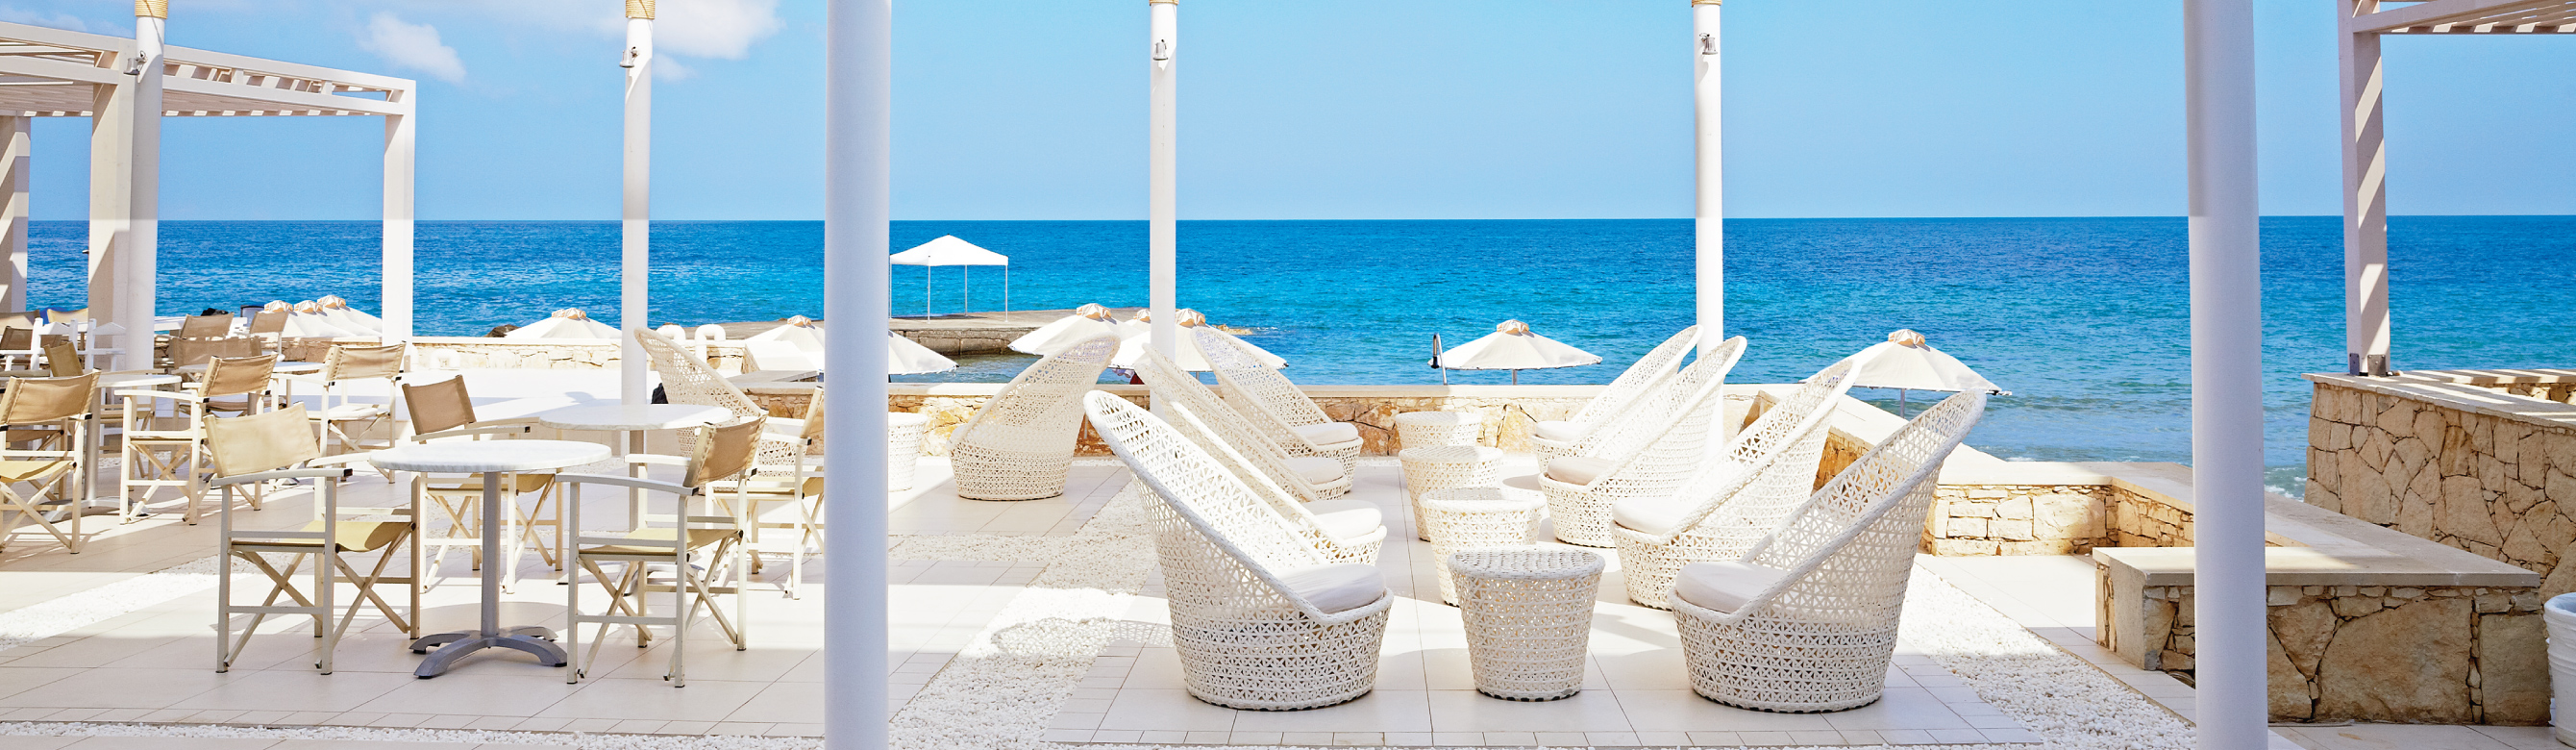 73-Simple-Furnishings-Enhance-the-Feel-of-Sea-and-Sky-at-Beach-Club-YalosS.jpg